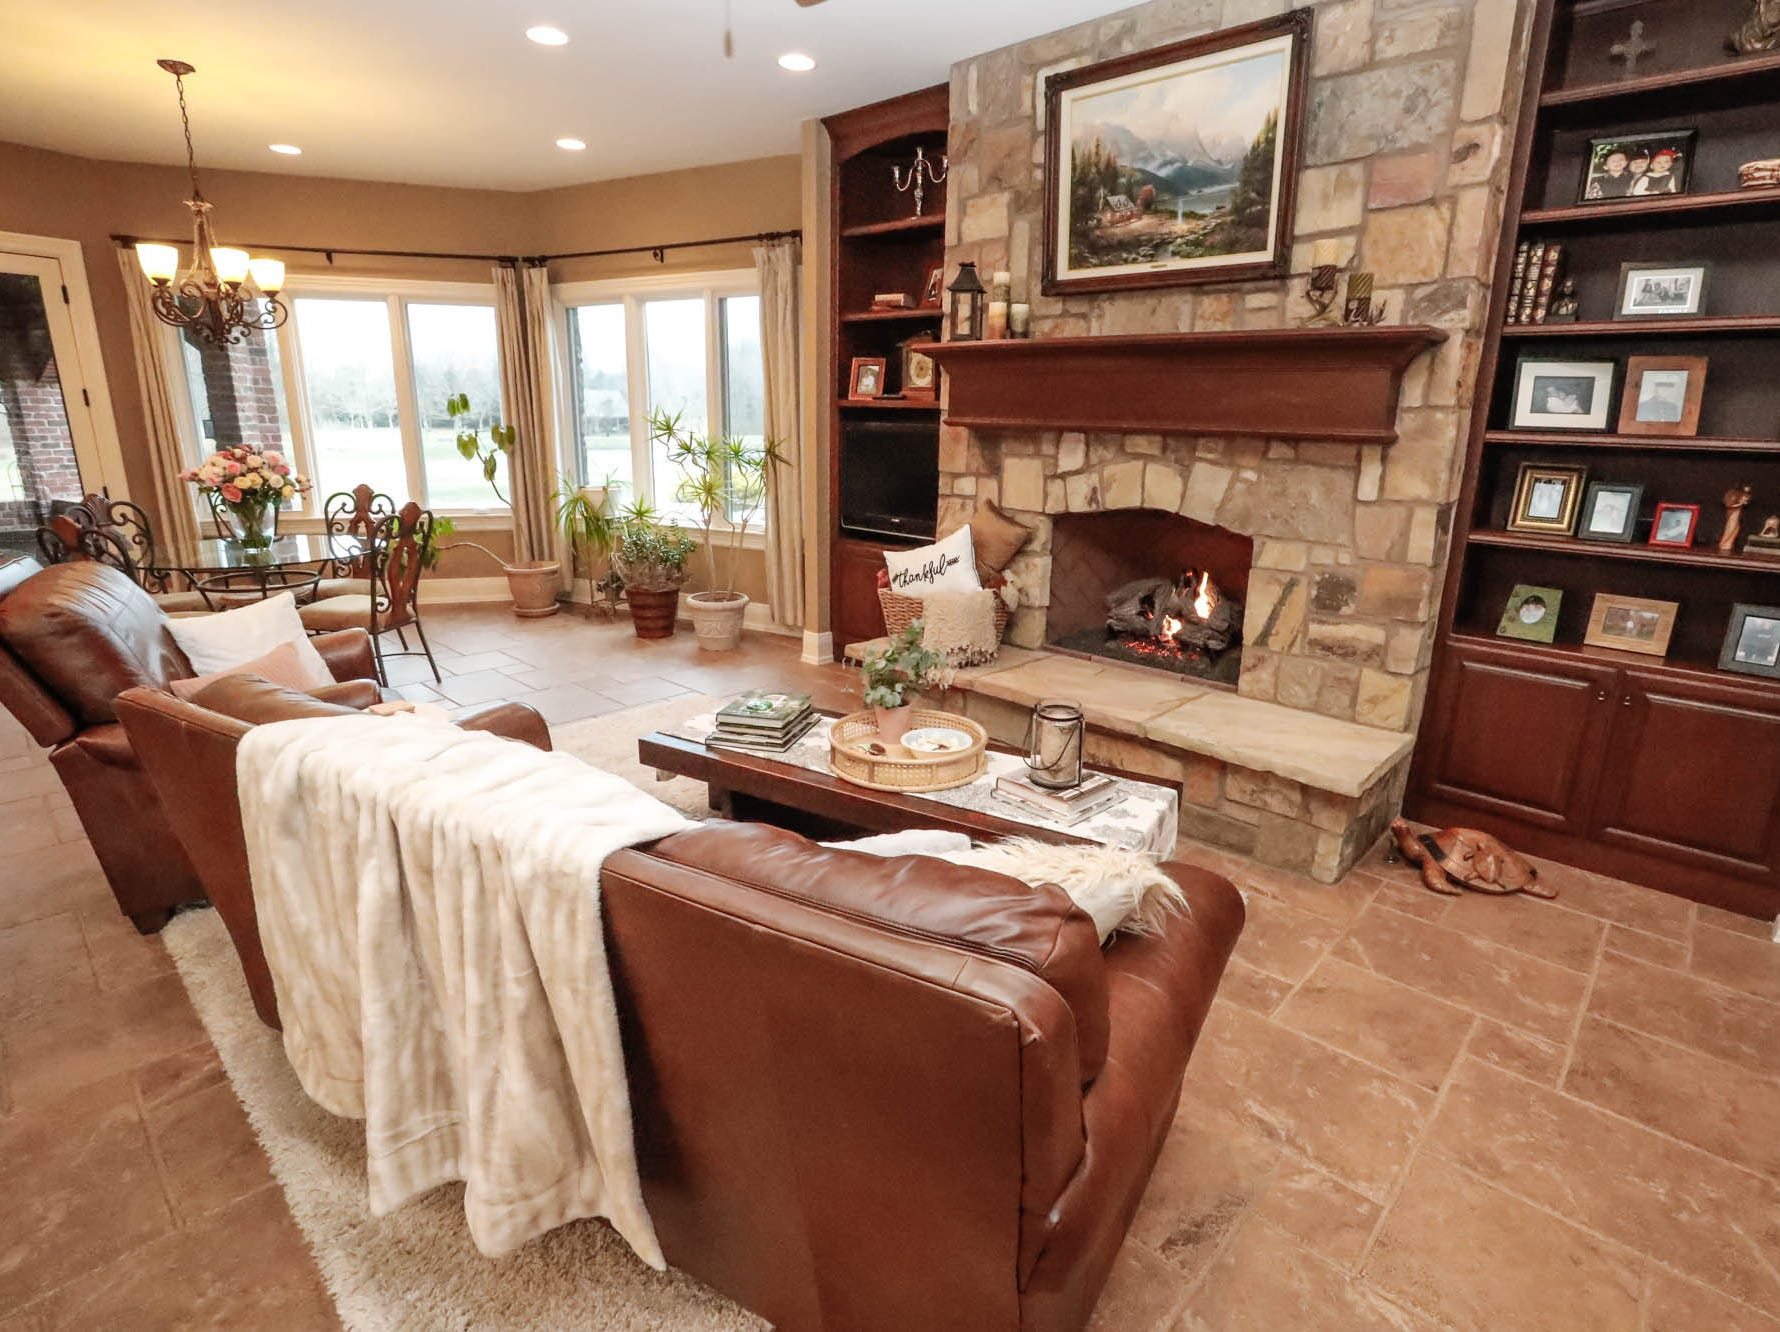 The open plan kitchen features a living room space with fireplace in a traditional $2m home up for sale in Bargersville Ind. on Wednesday, Jan. 9, 2019. The house sits on 8.1 acres.